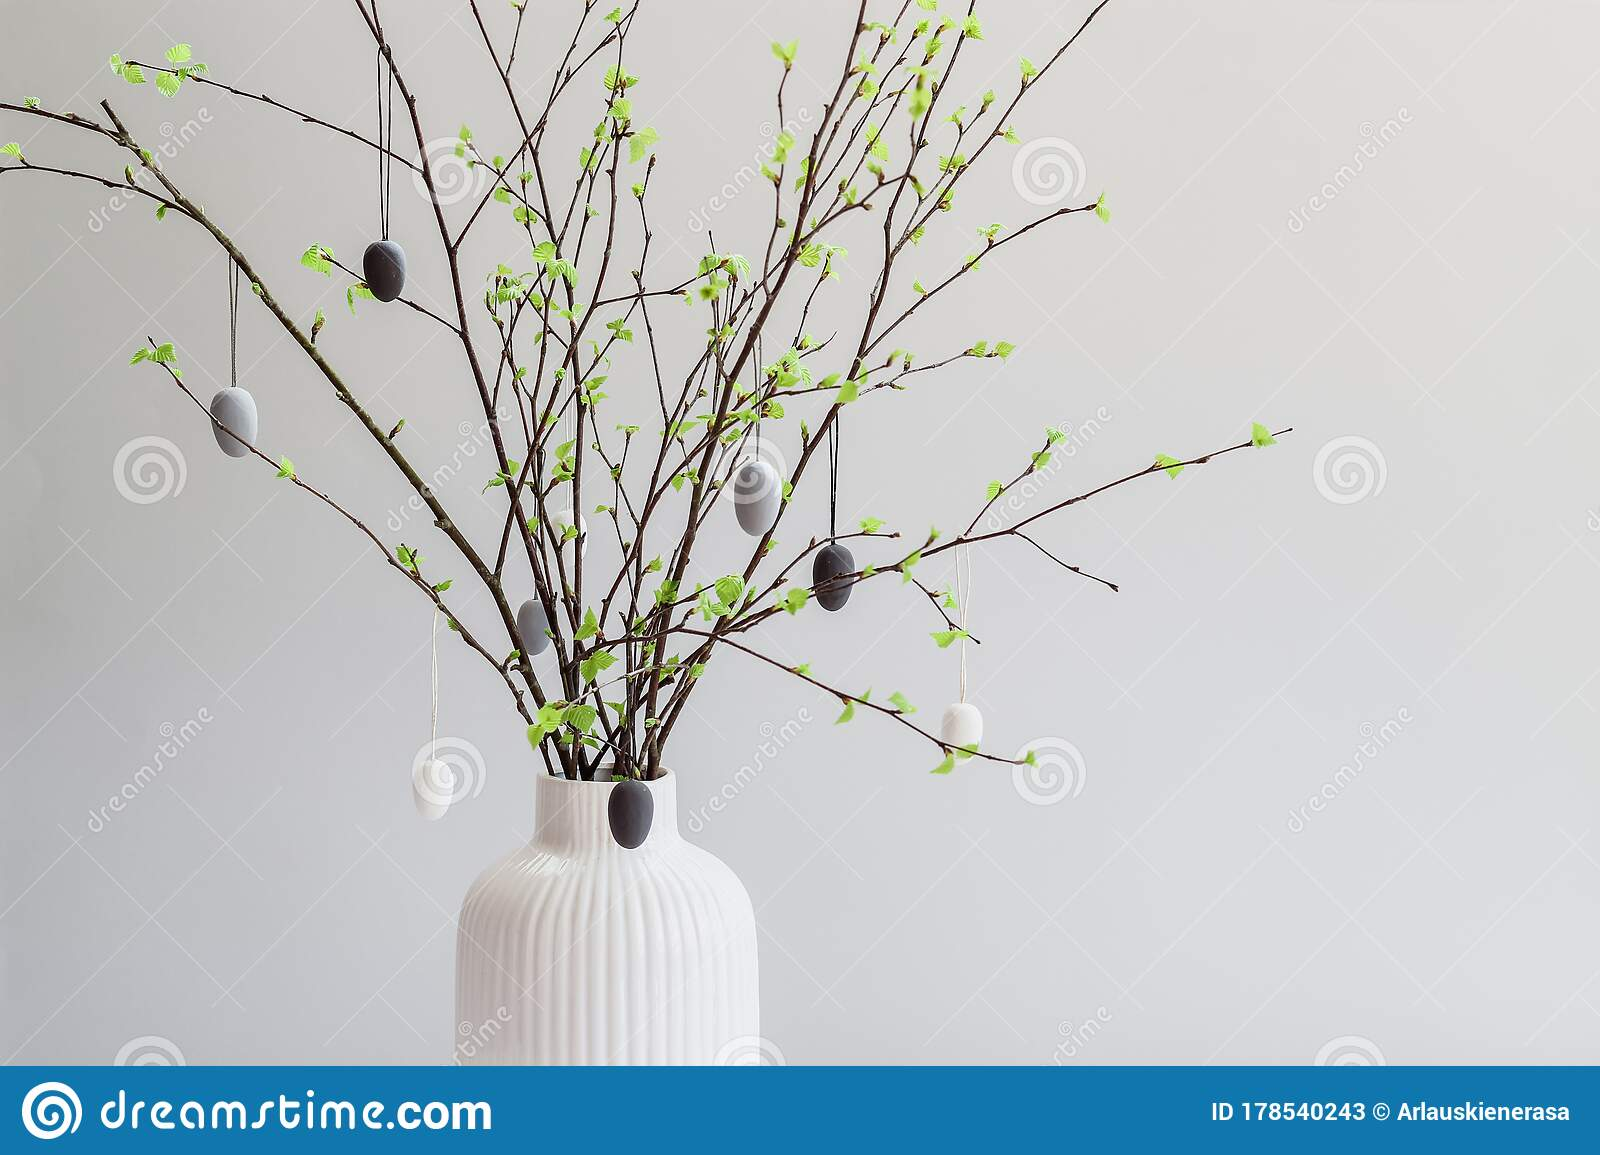 Birch Tree Branches Decorated With White And Gray Painted Eggs Easter Tree Stock Image Image Of Greeting Decoration 178540243